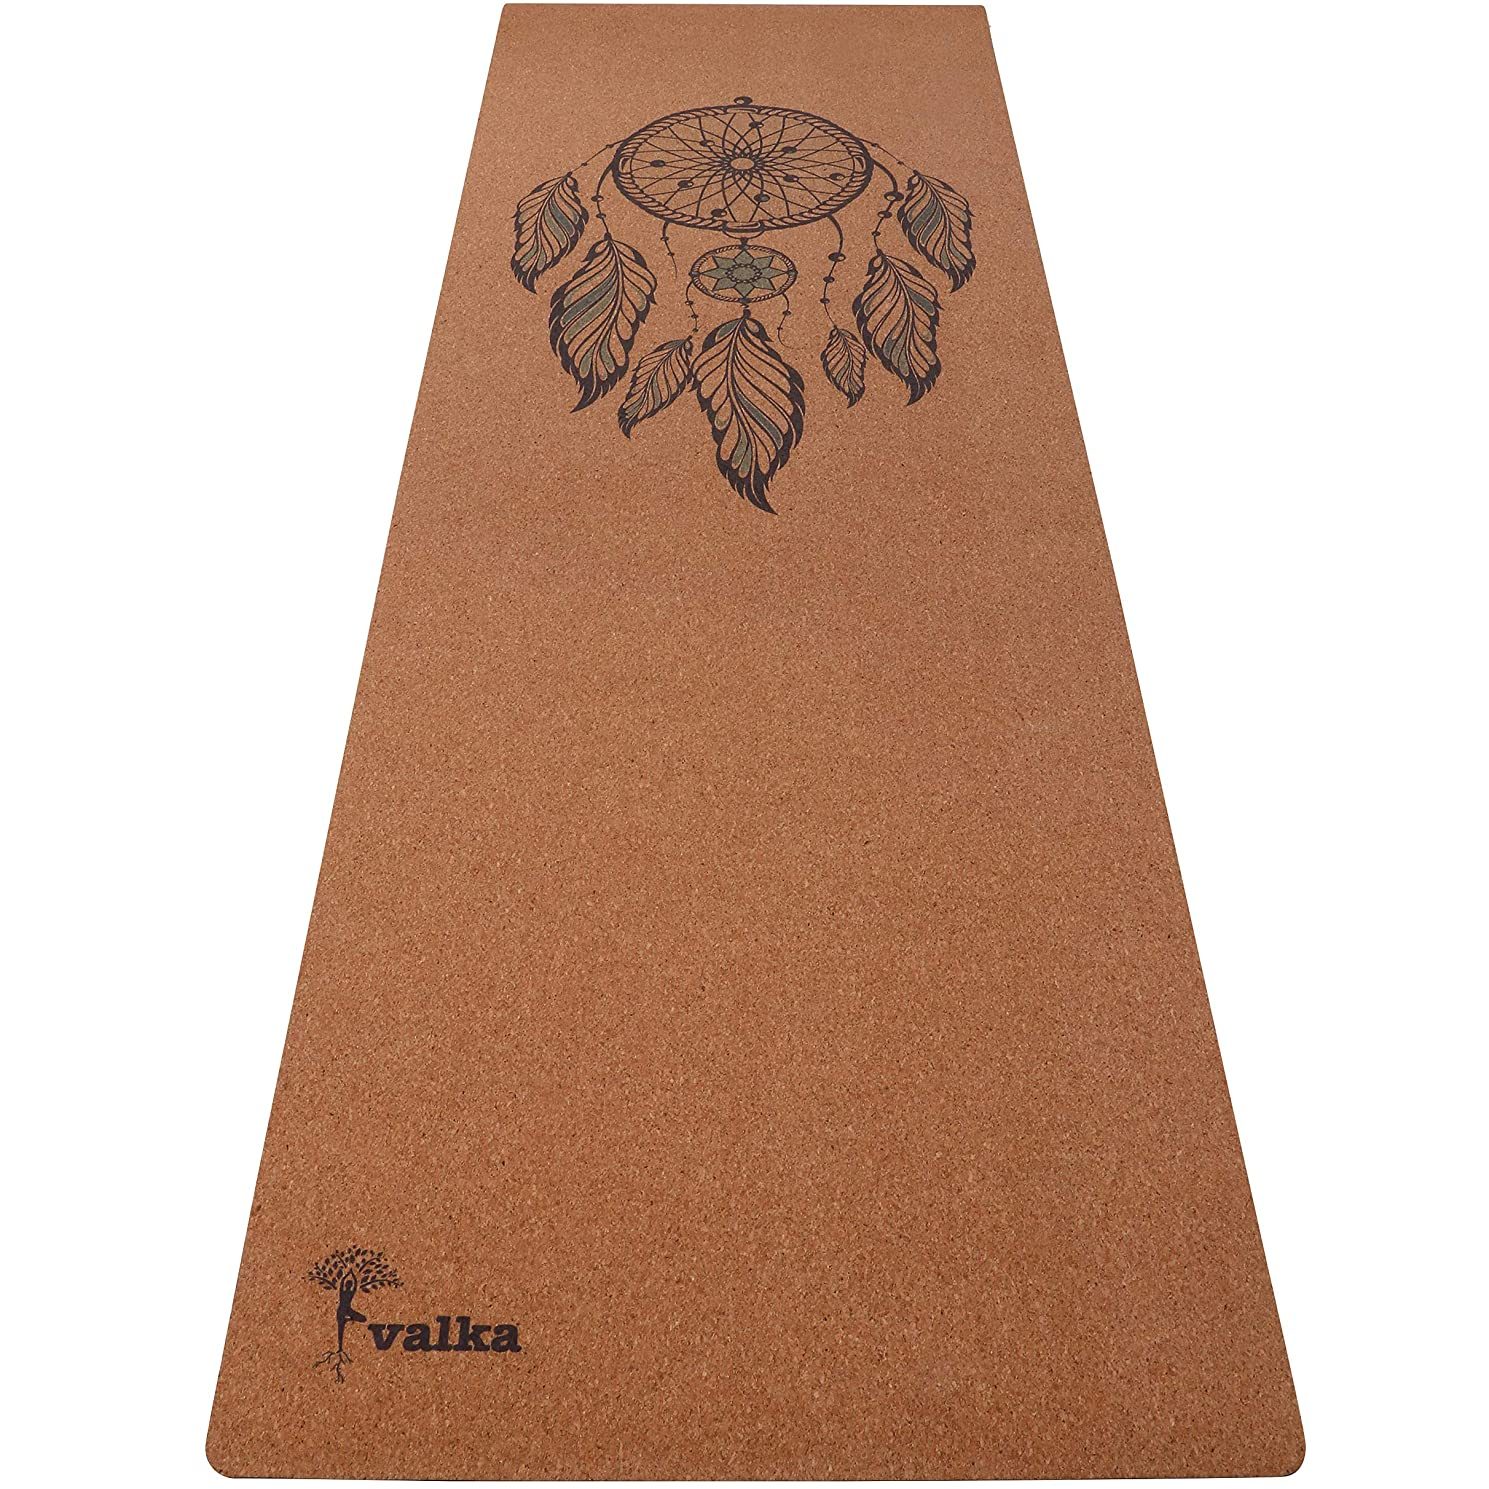 Valka Yoga Cork Yoga Mat - Beautiful Cork Rubber Yoga Mats with Carry Strap. Non Slip, Eco Friendly & Antimicrobial 72